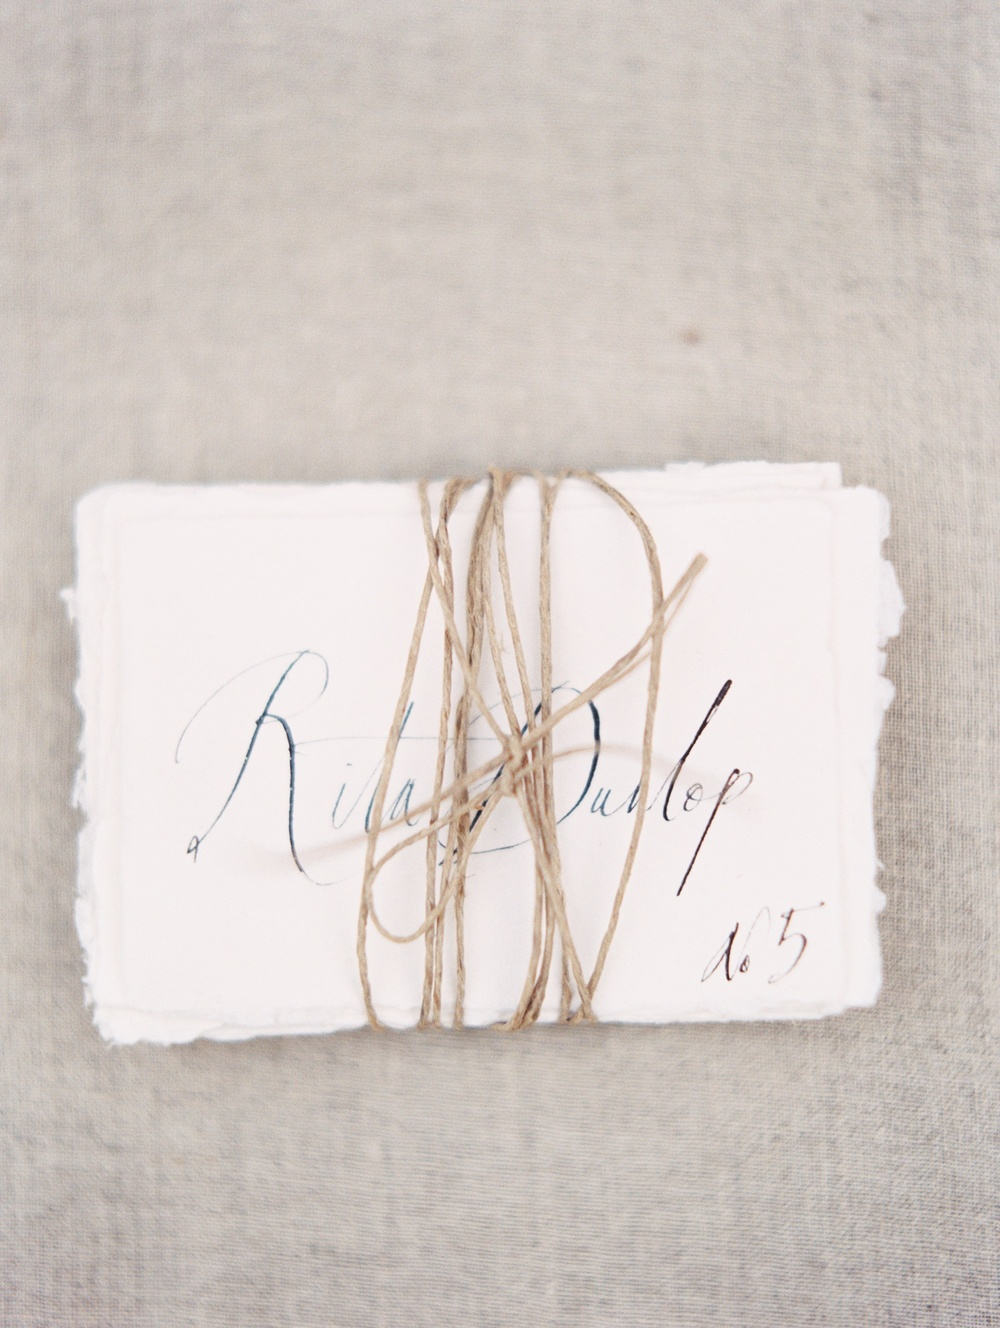 13-organic-calligraphy-place-cards-tara-spencer.jpg